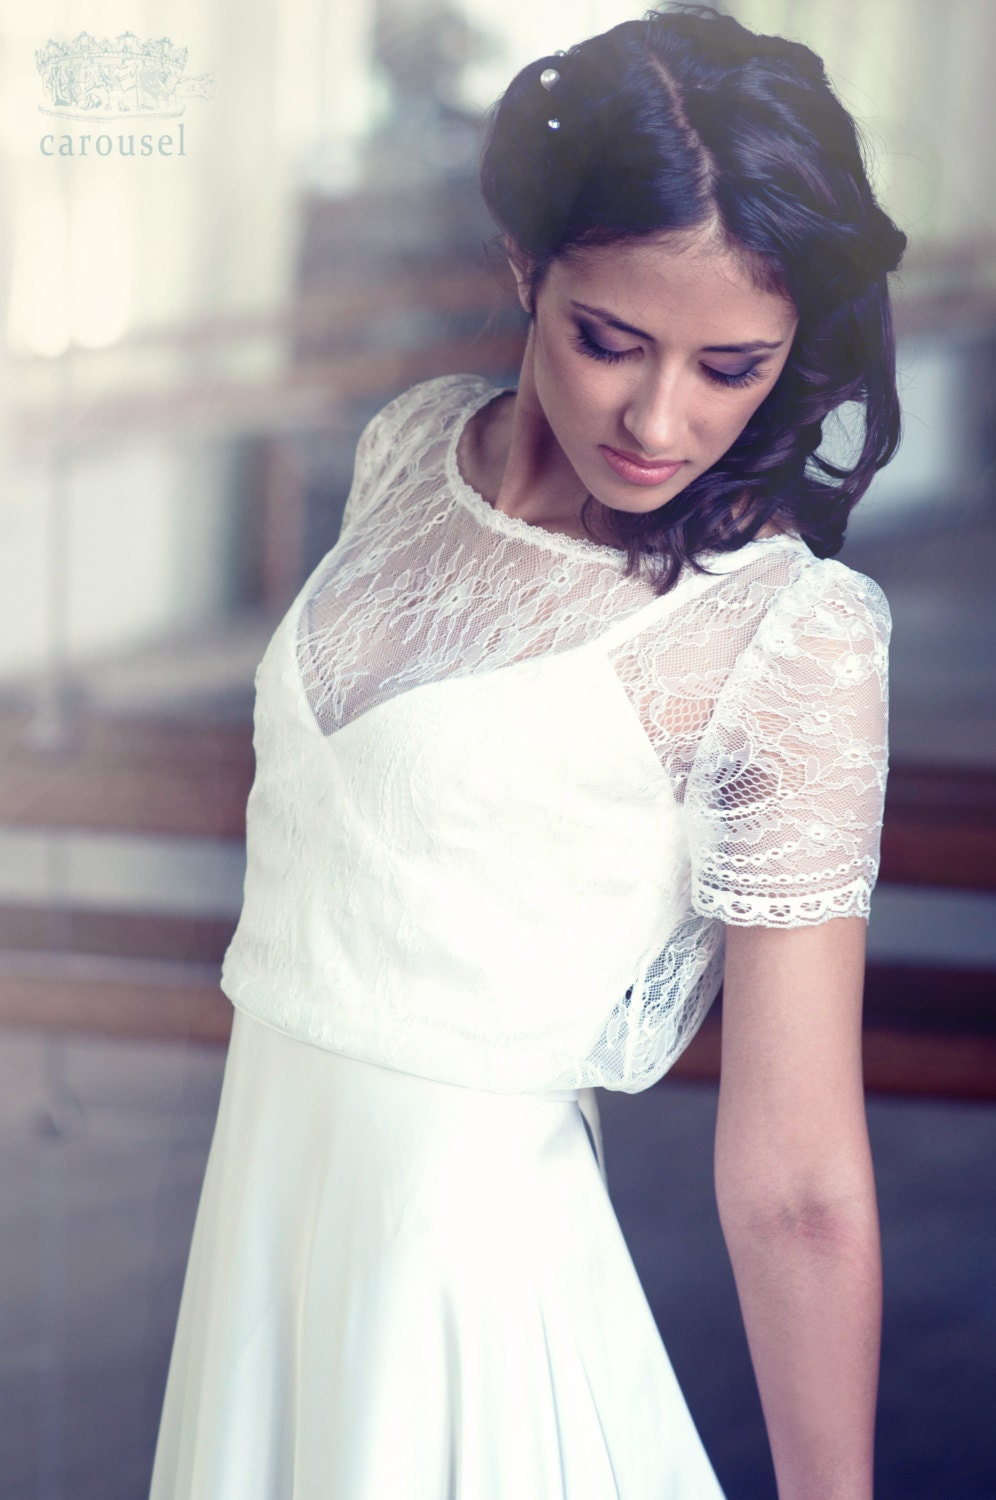 White lace apron wedding - Lace Wedding Top Separate Short Sleeve Bridal Cover Up Lace Bridal Top Bridal Separates